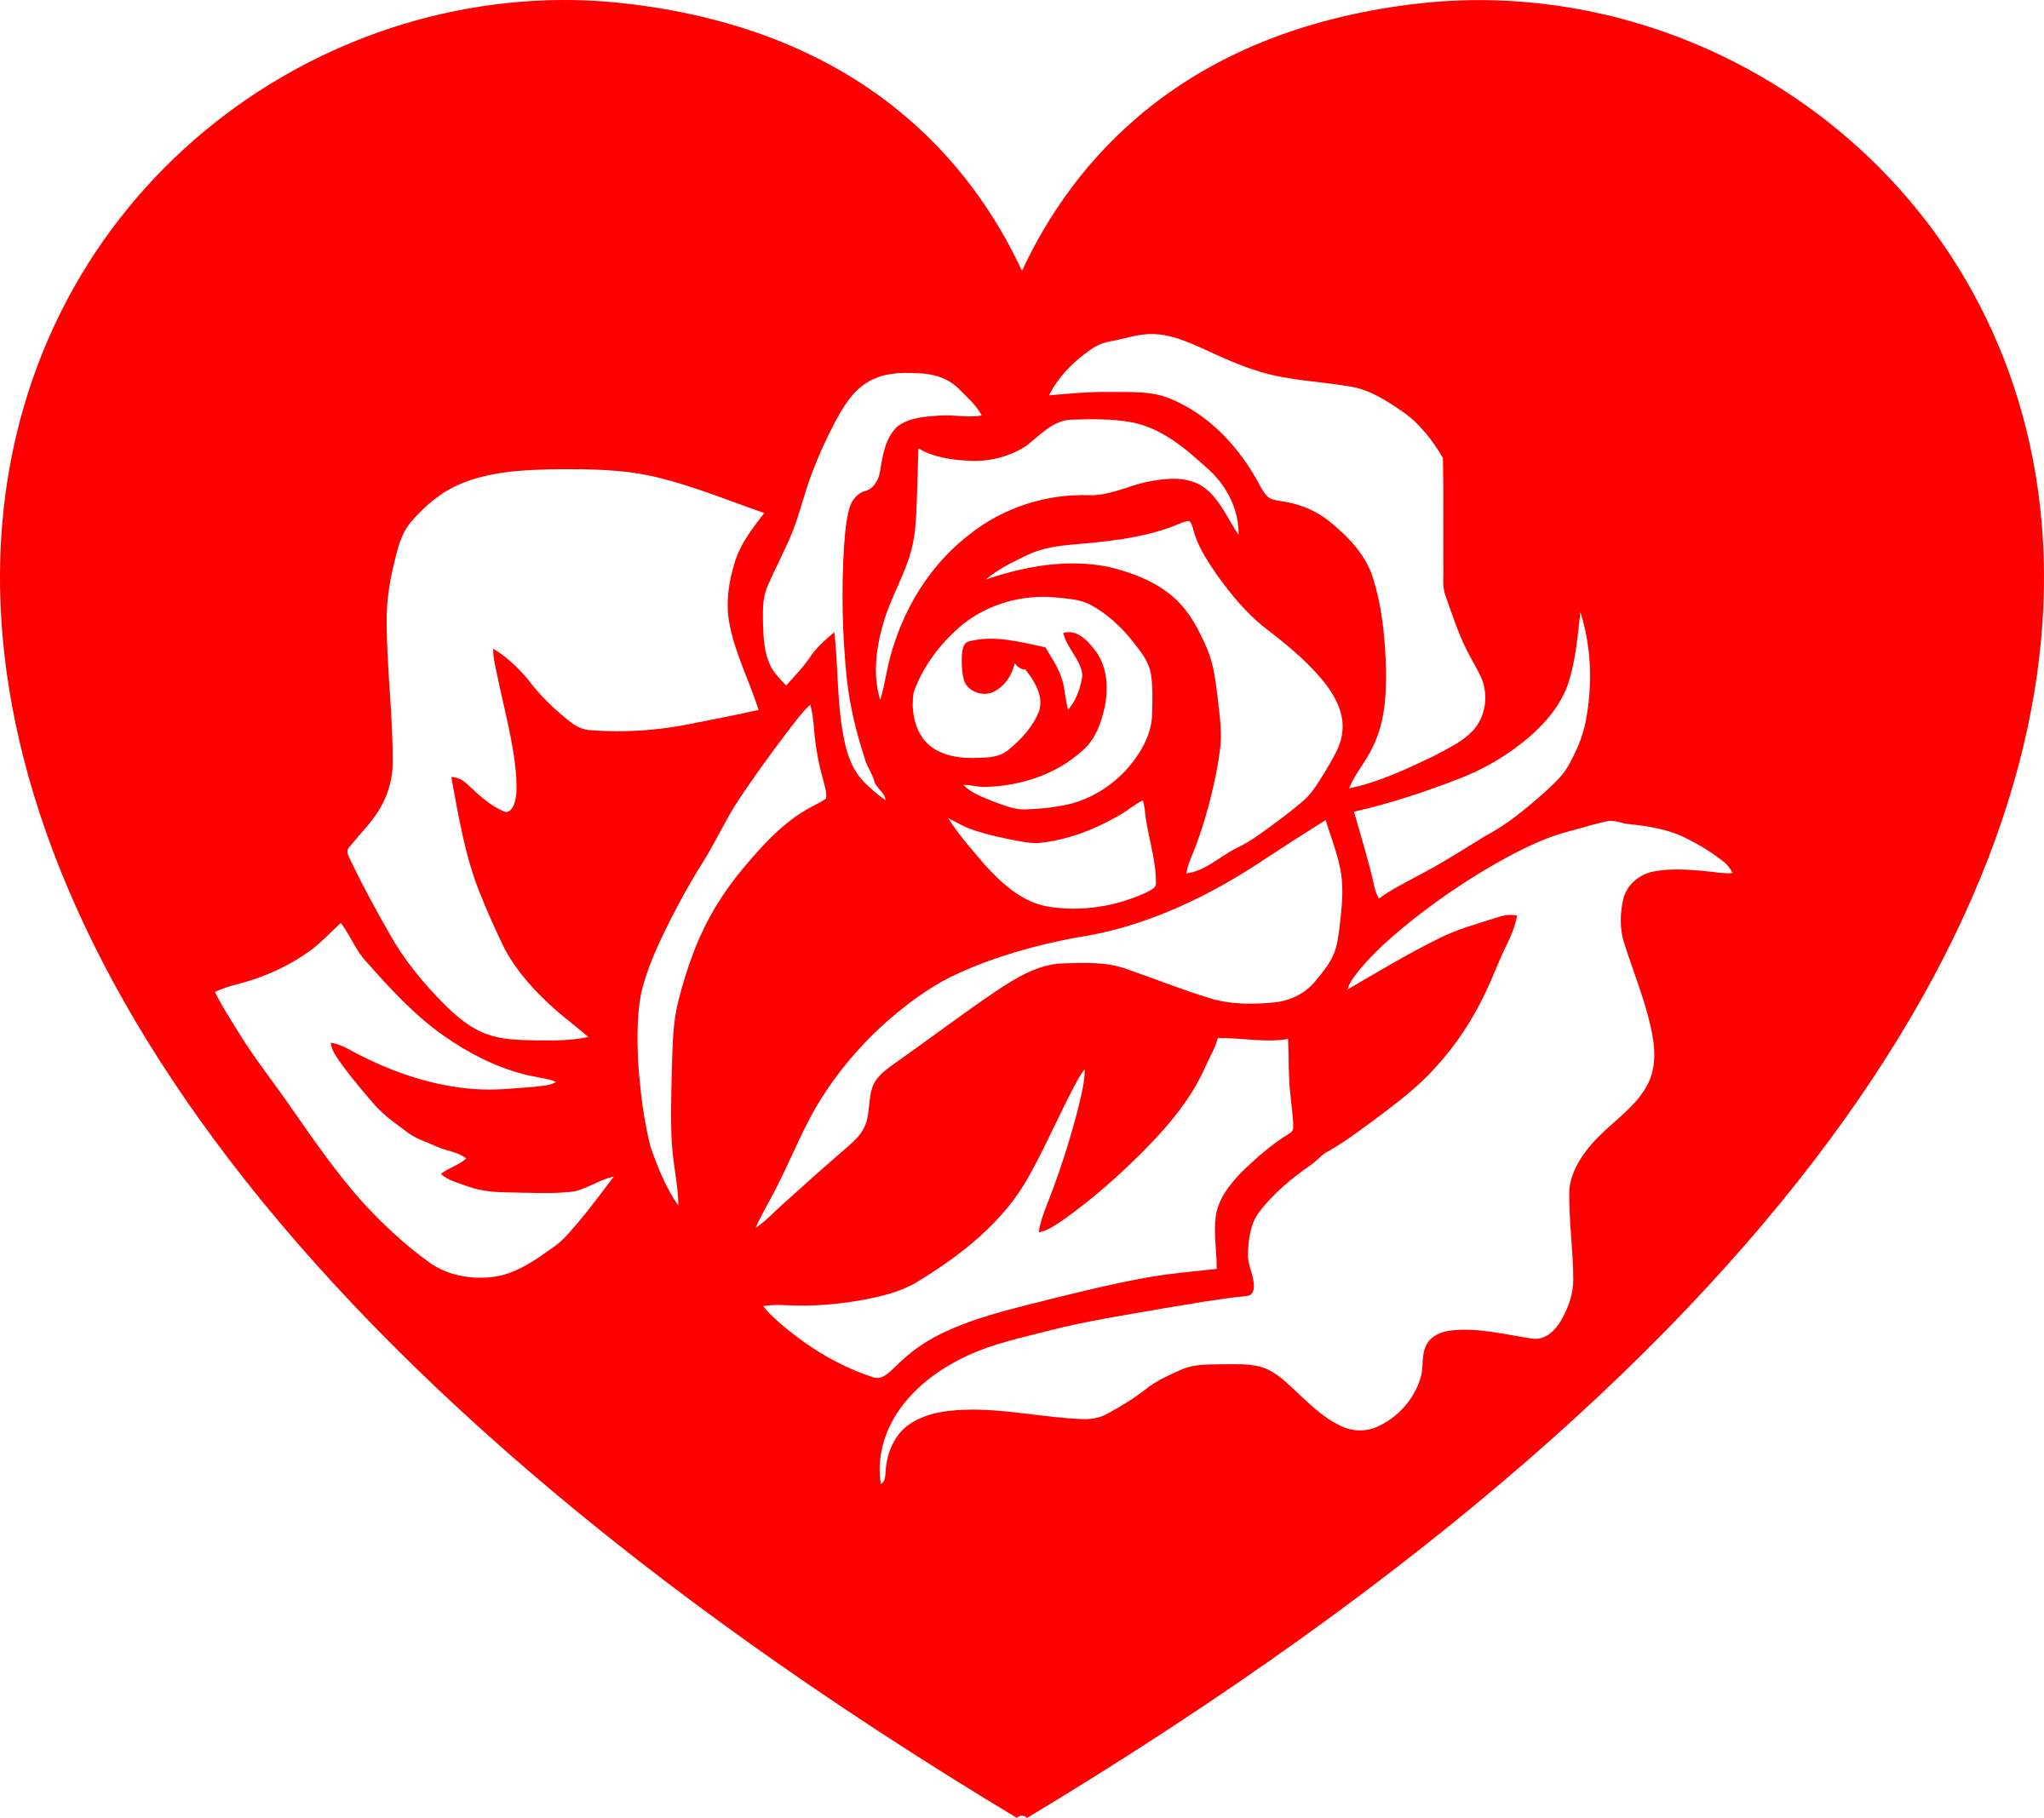 Rose white by serioustux. Clipart roses heart